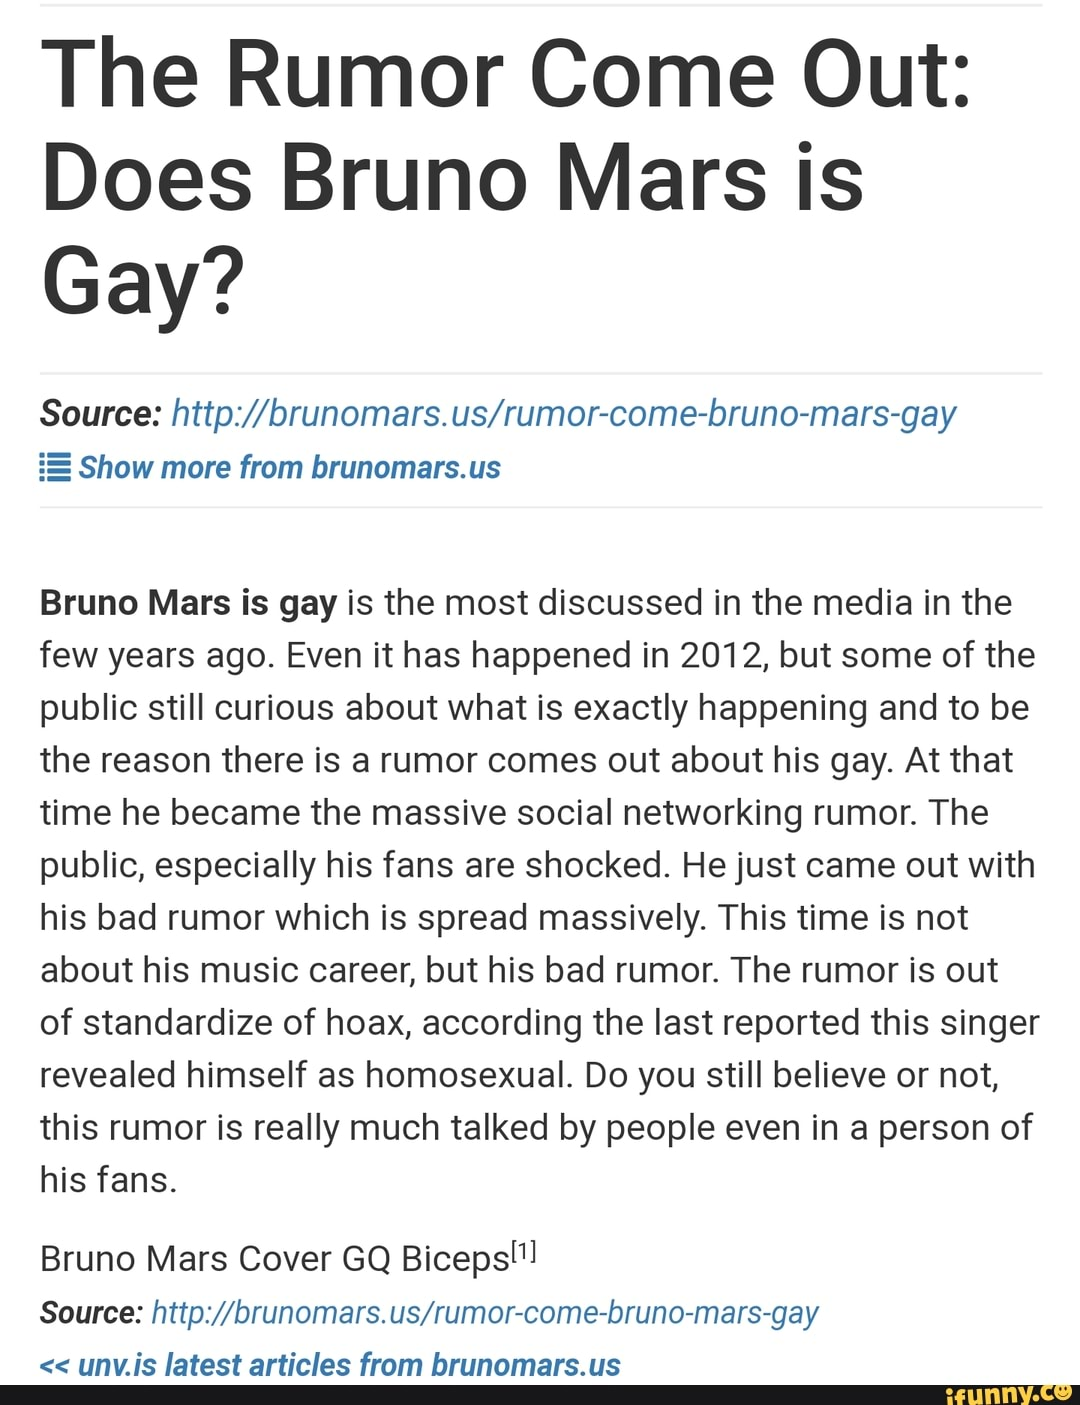 Does Bruno Mars Is Gay